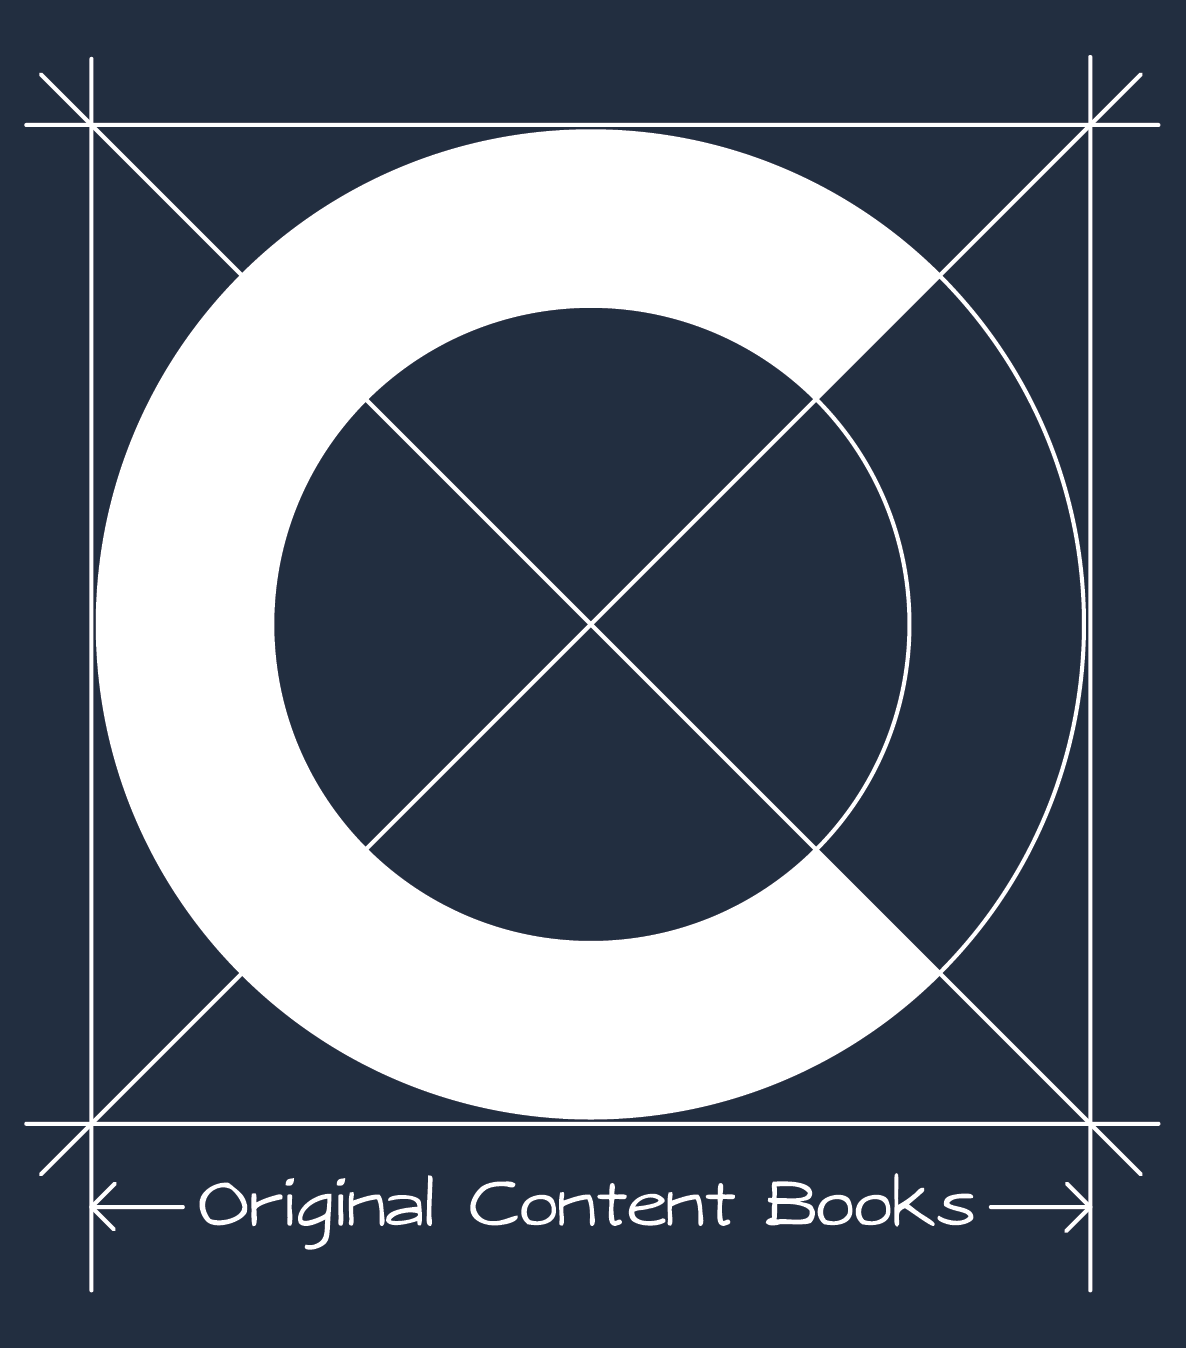 Original Content Books Logo